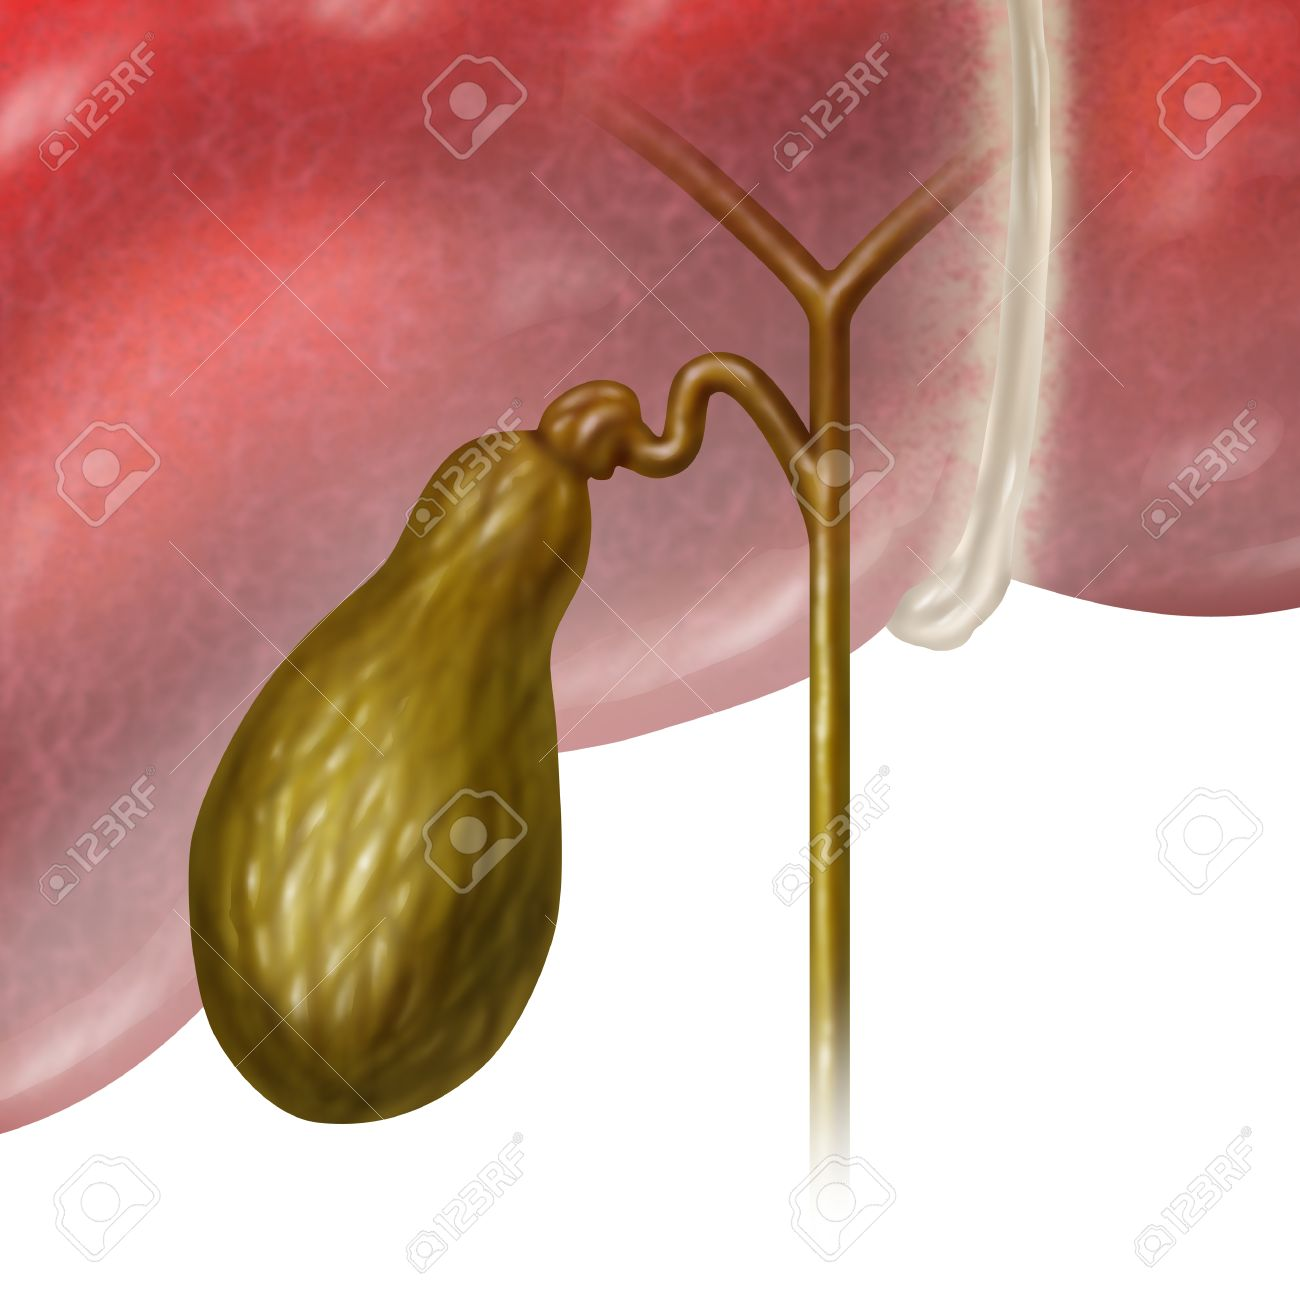 Gallbladder Or Gall Bladder Human Internal Organ As A Function